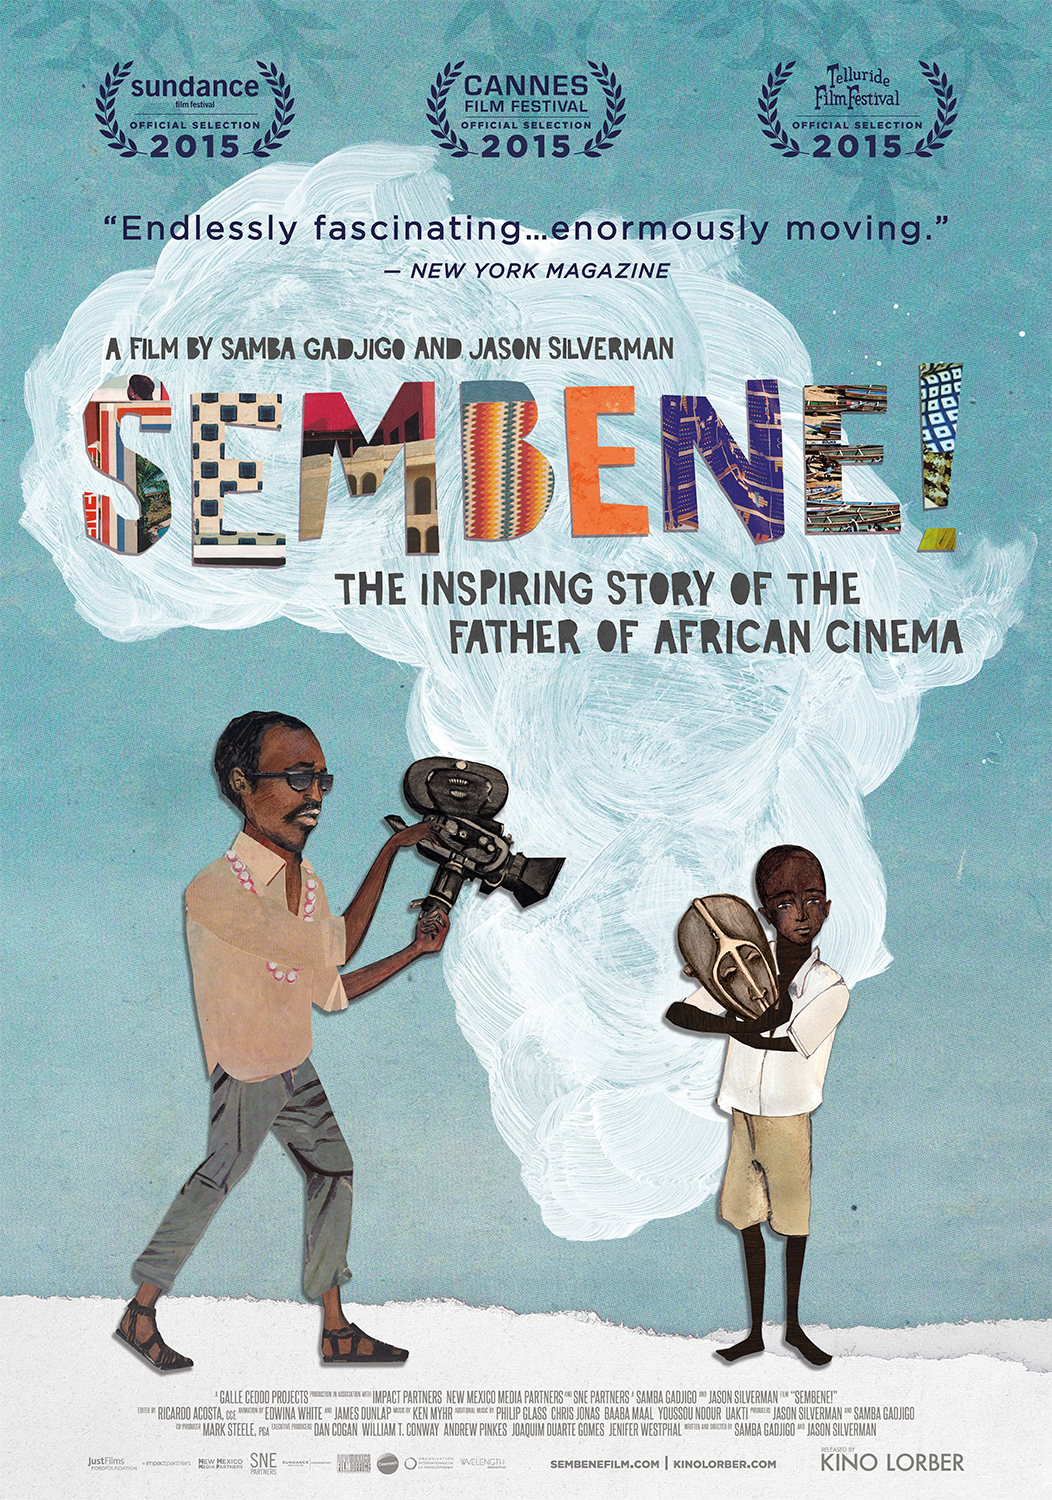 sembene! - OVERVIEW: Sembene! tells the unbelievable true story of the father of African cinema, the self- taught novelist and filmmaker who fought, against enormous odds, a 50-year battle to return African stories to Africans.FILMMAKERS: A film by Samba Gadjigo and Jason Silverman.Twitter: https://twitter.com/SembeneFilmNOMINEE: Sundance Film Festival and Cannes Film FestivalPRESS: Variety, The Hollywood Reporter, The New York Times, The Washington Post, Indiewire